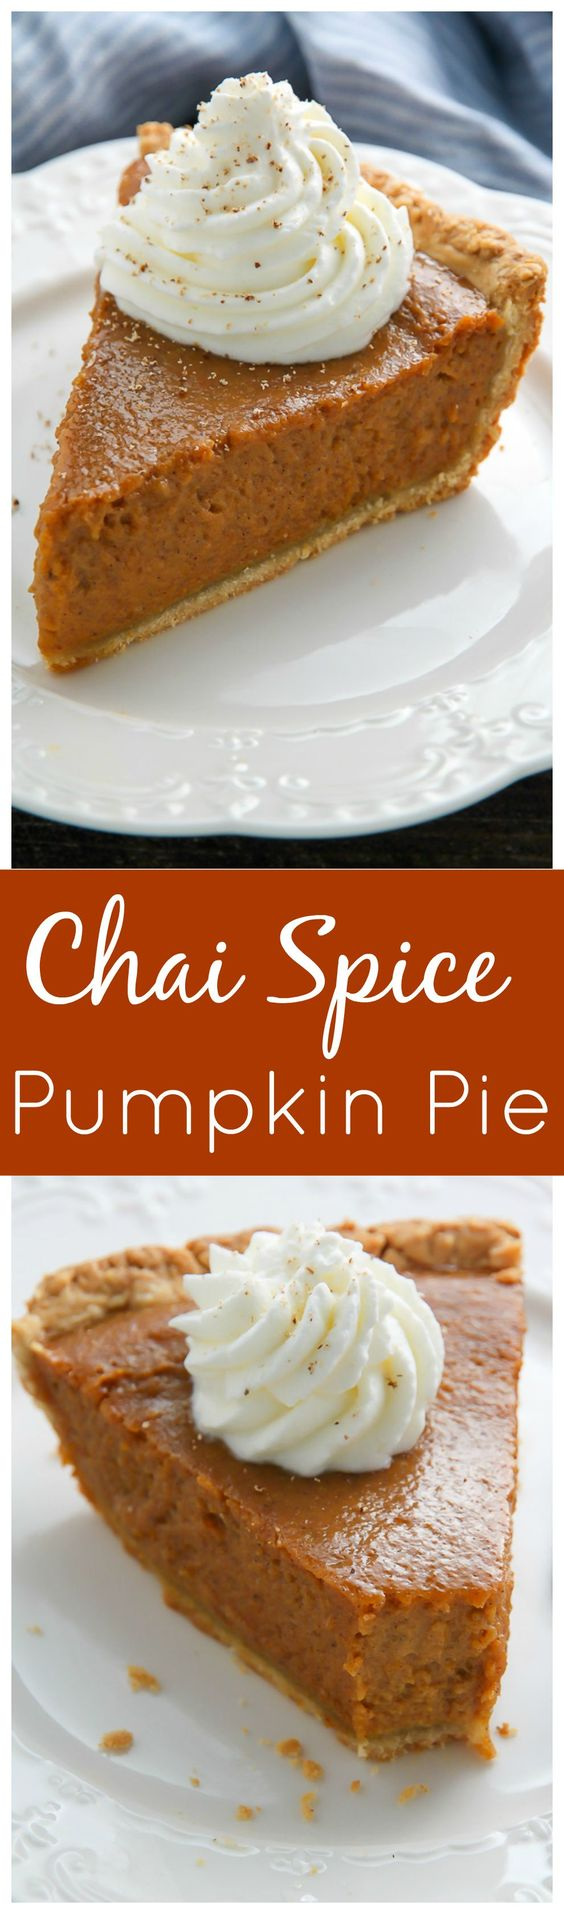 Chai Spice Pumpkin Pie - every bite is silky smooth!